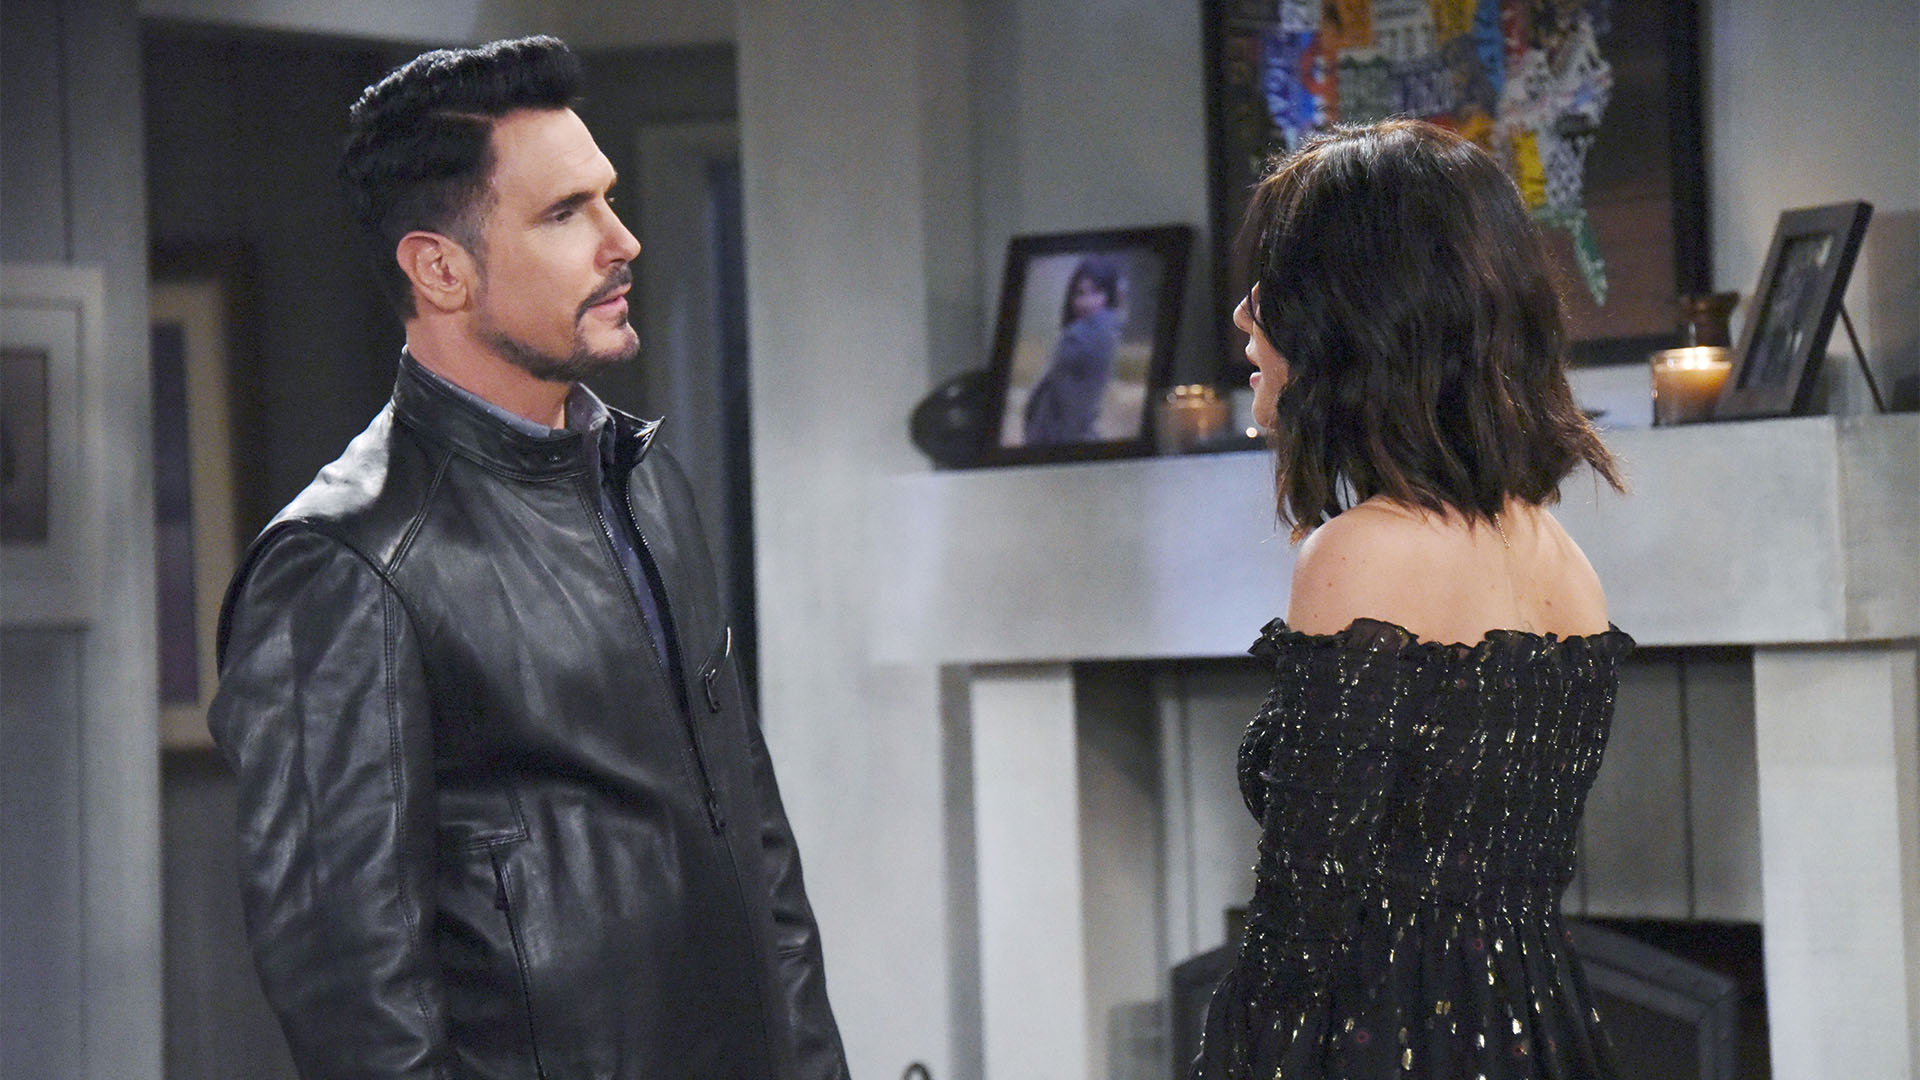 Bill takes Steffy's refusal of his proposal of marriage as a personal challenge.